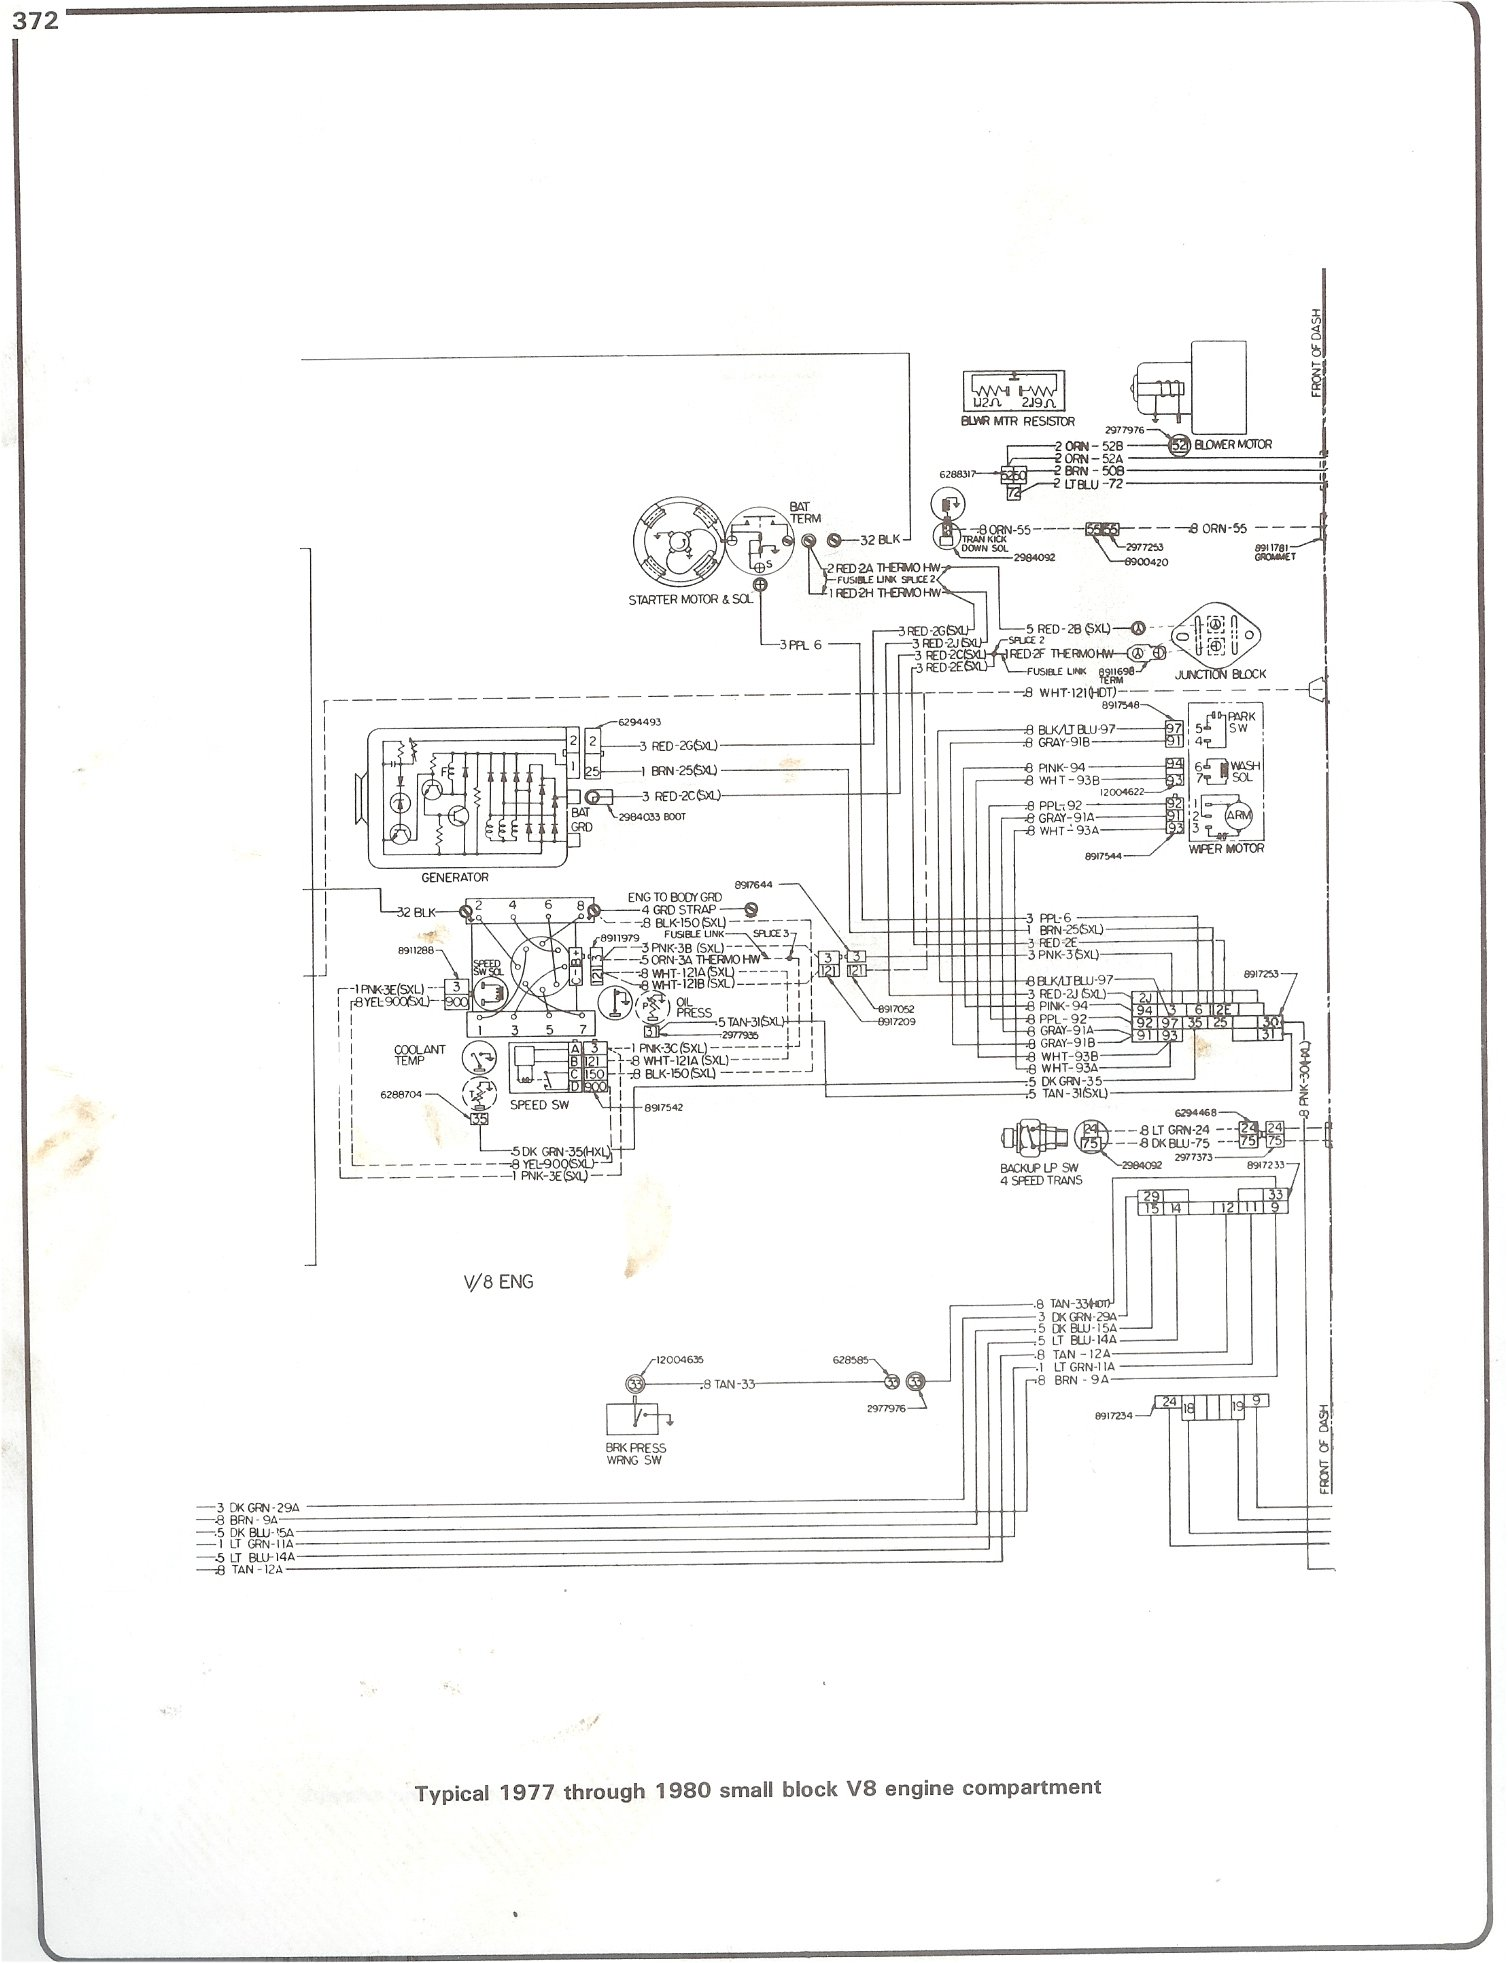 Wiring Diagram 350 Chevy K10